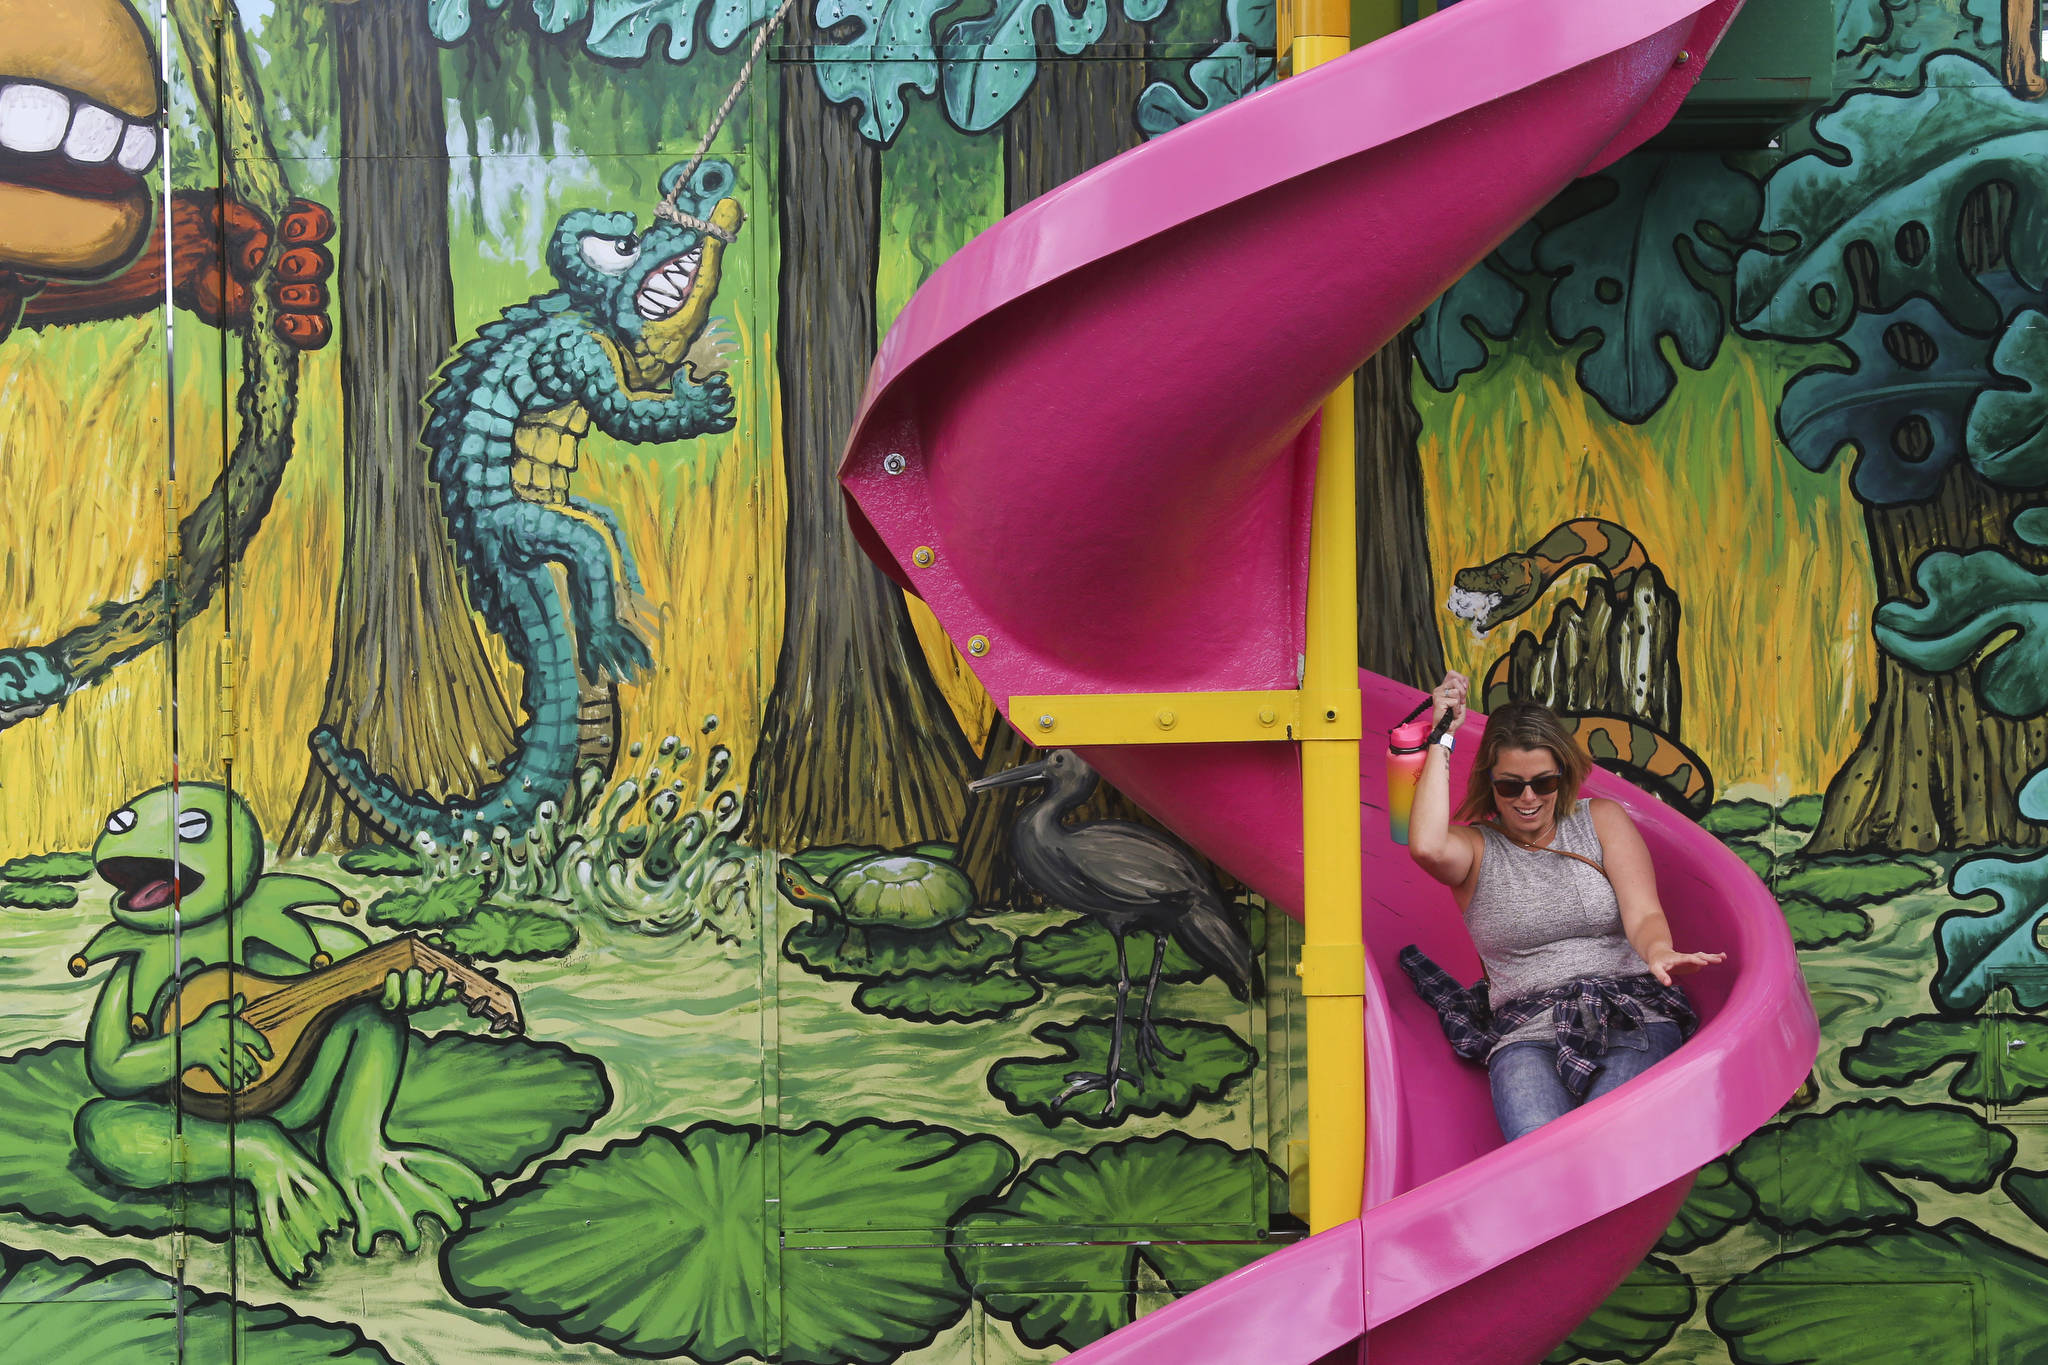 Even the adults can have fun as Tiara Wallner, of Lake Stevens, does sliding down the Monkey Maze slide on opening day of the Evergreen State Fair on Thursday, Aug. 22, 2019 in Monroe, Wash. (Andy Bronson / The Herald)